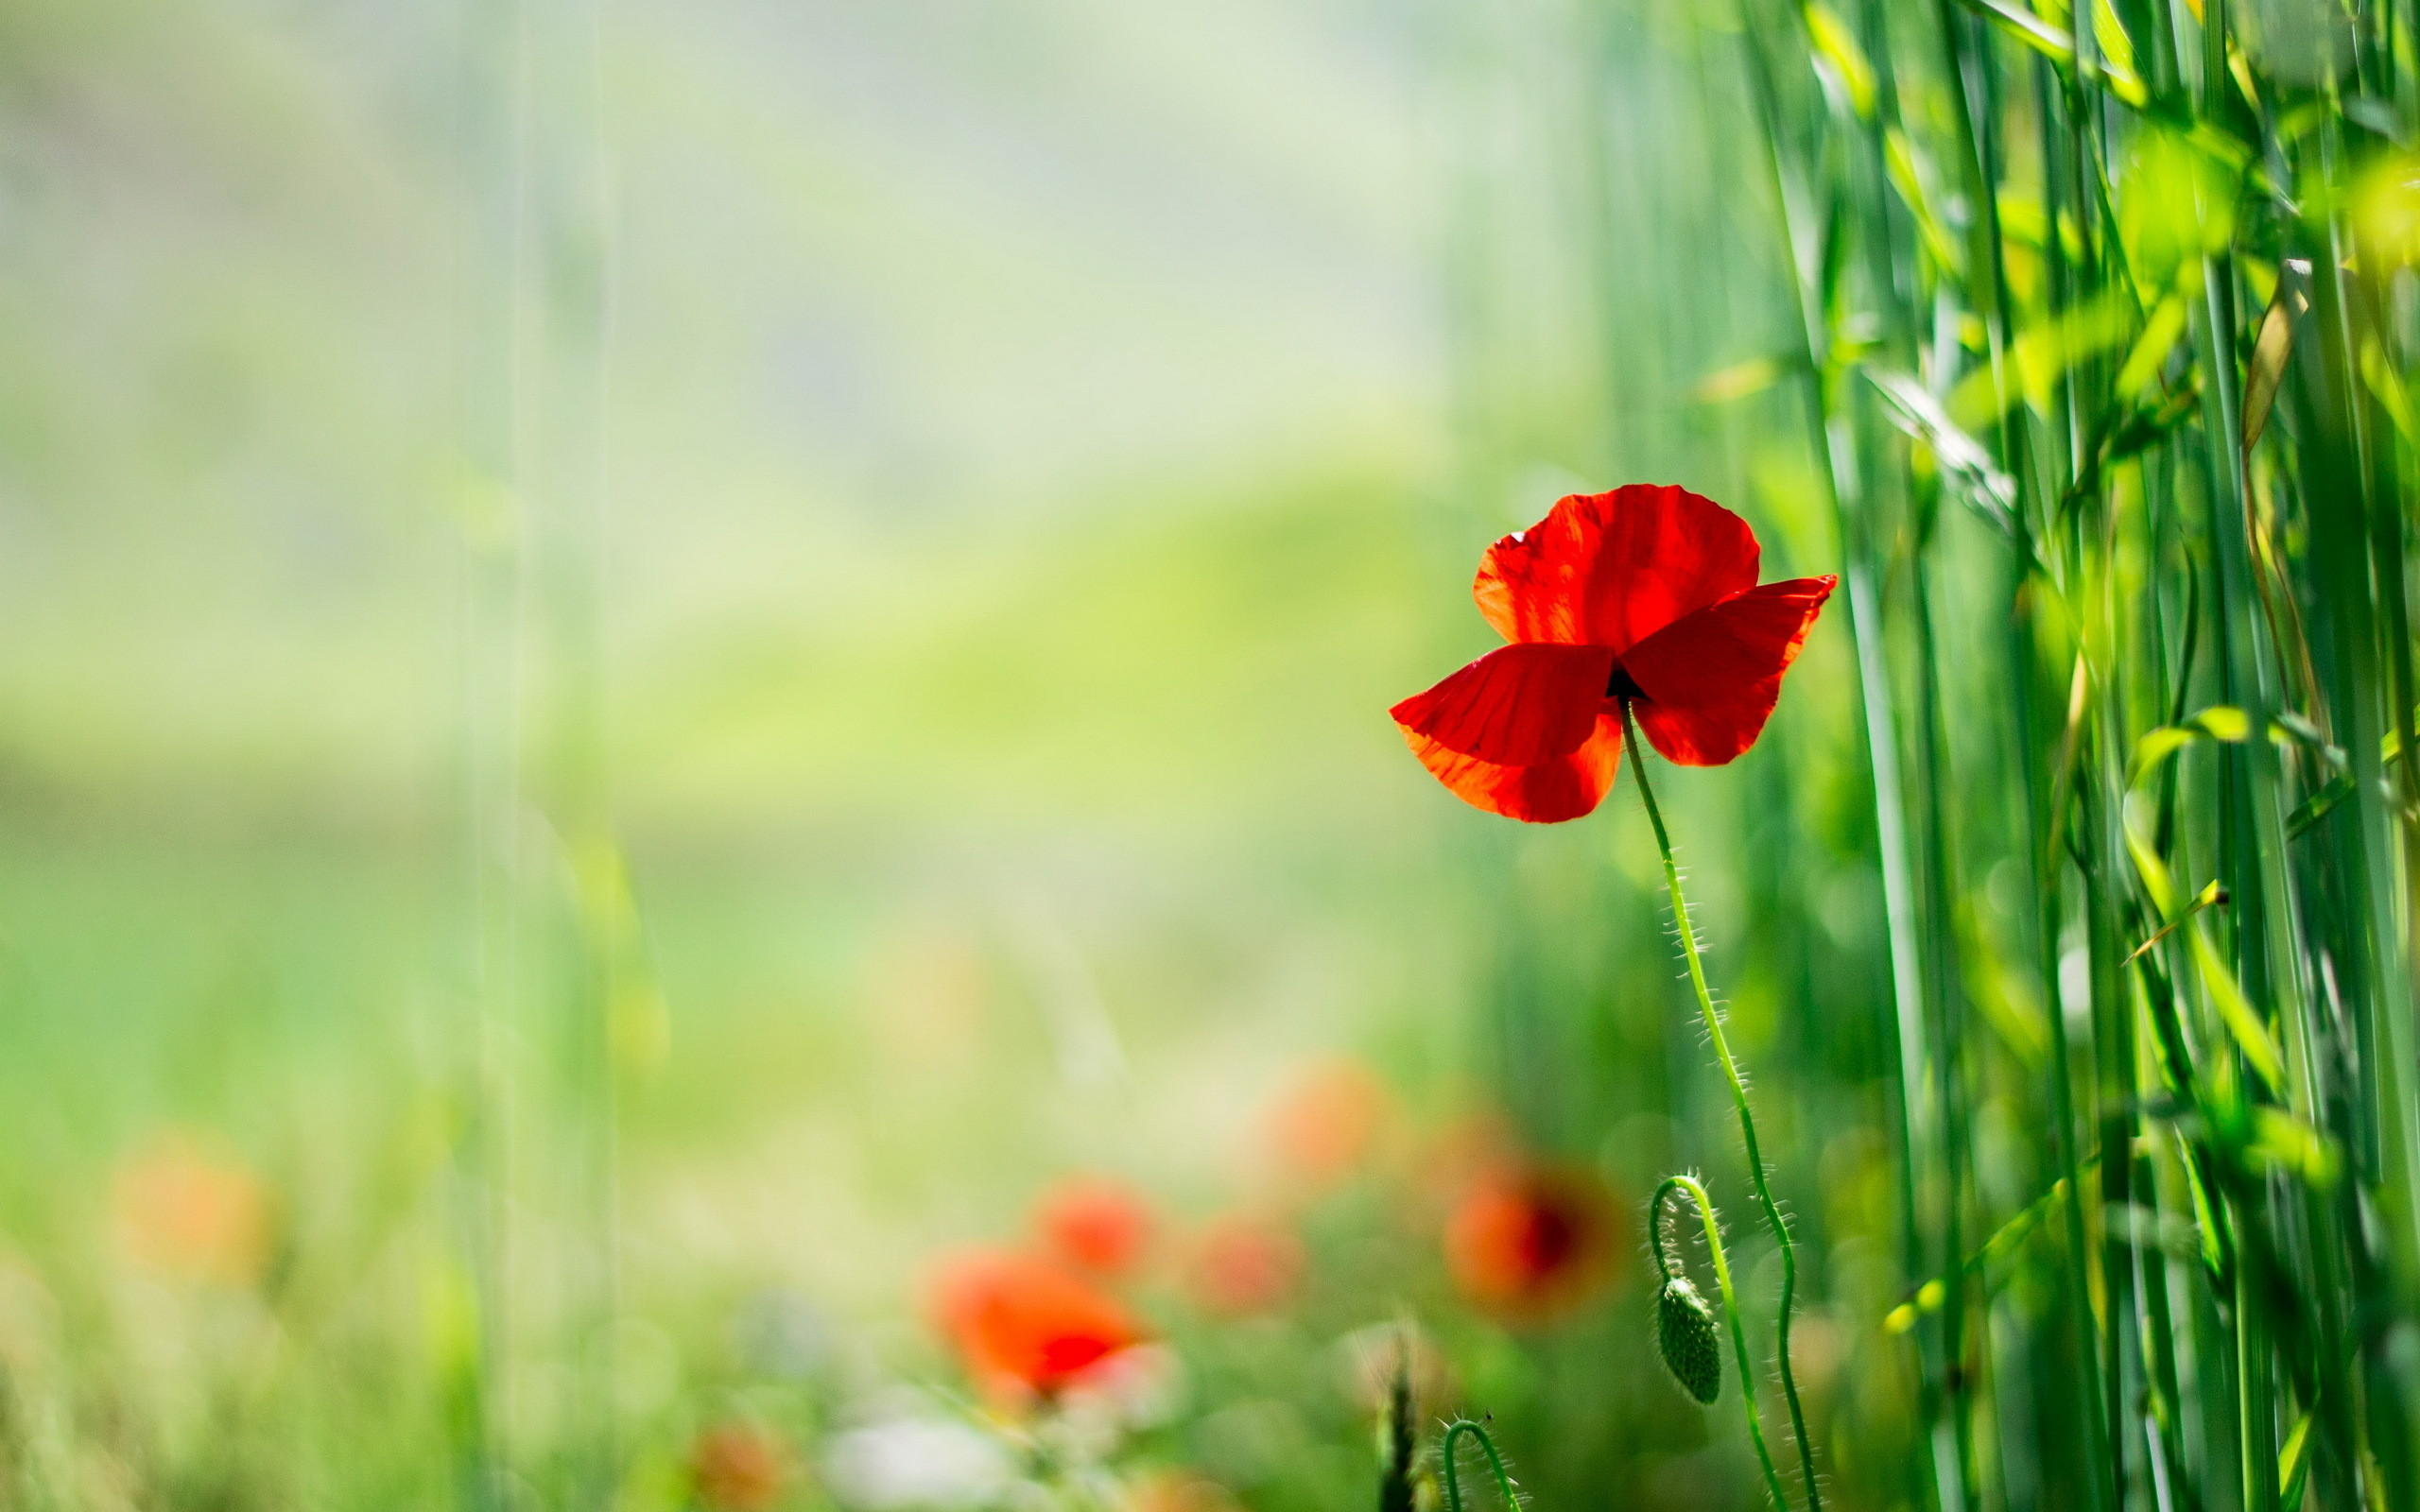 2560x1600 Poppy HD Wallpaper | Background Image |  | ID:419595 - Wallpaper  Abyss